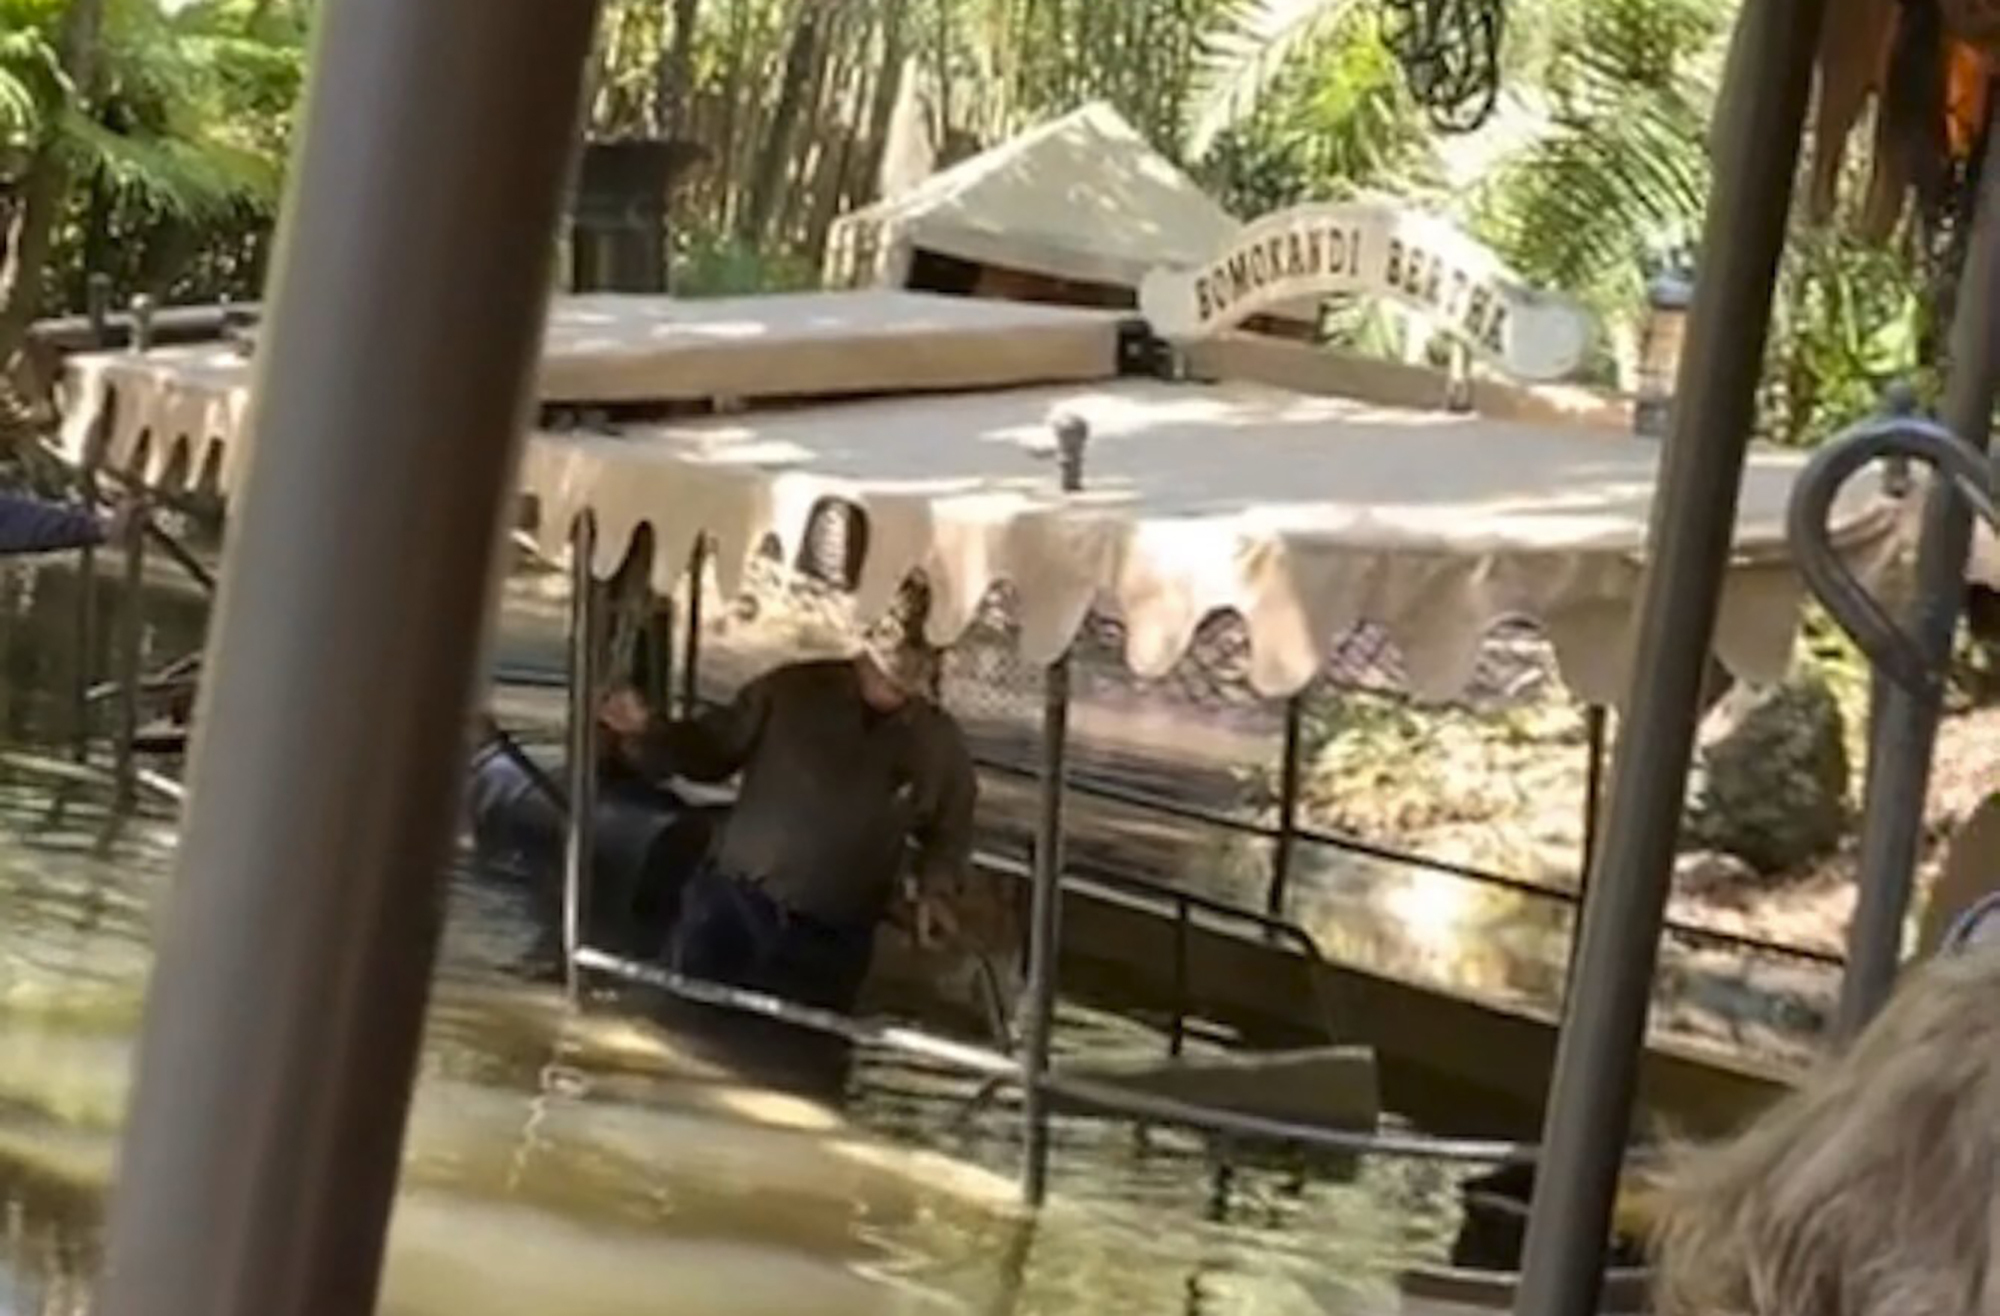 A person stands knee-deep in water aboard a Jungle Cruise boat after the vessel took on water, Thursday, Feb. 27, 2020, at Walt Disney World in Orlando, Fla. The boat was evacuated and no one was hurt. (Matthew Vince via AP)